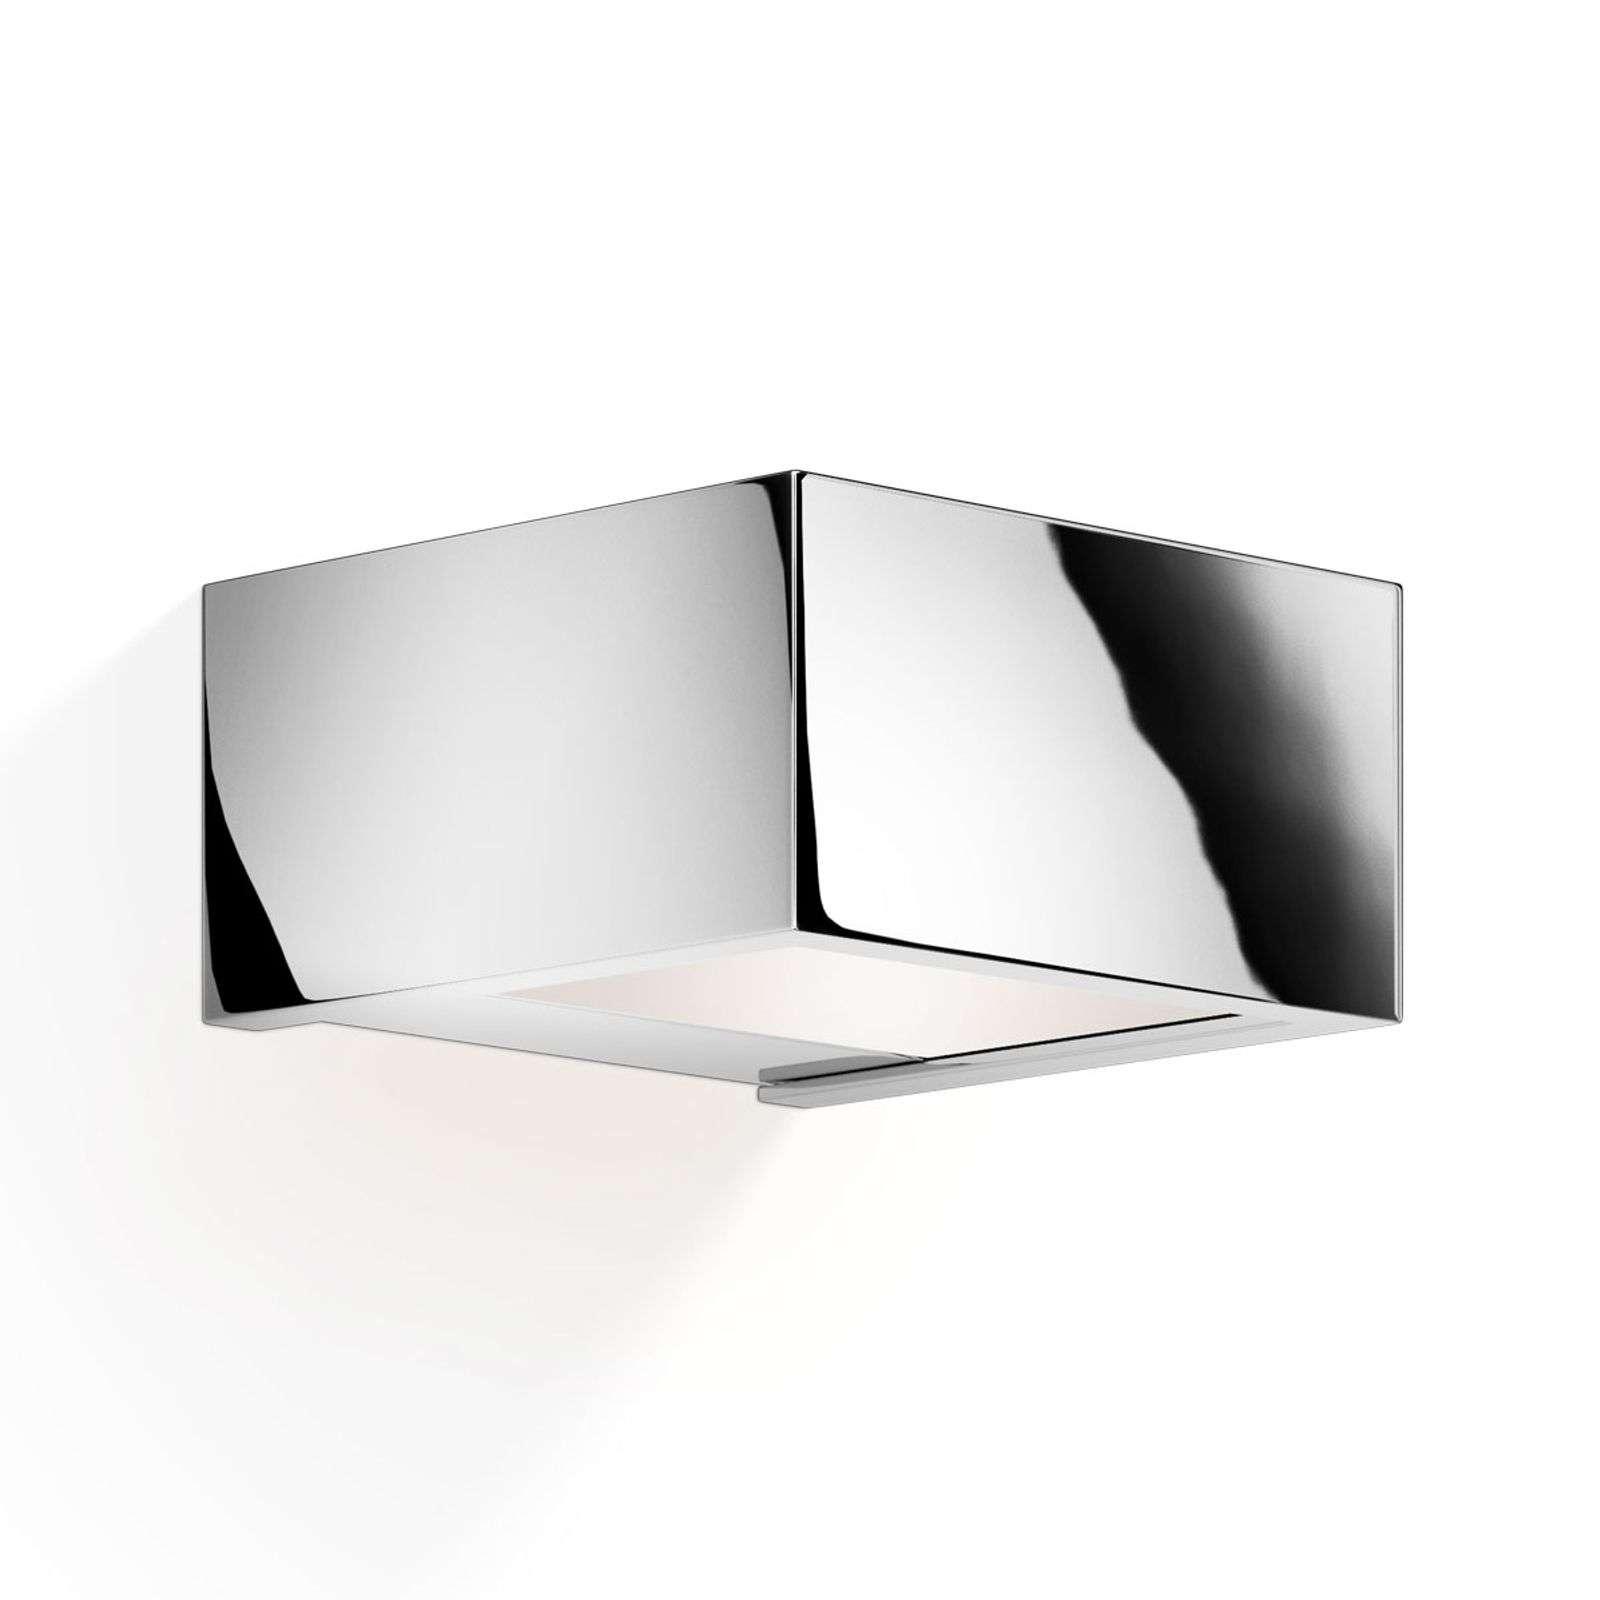 Decor Walther Box 10 wandlamp